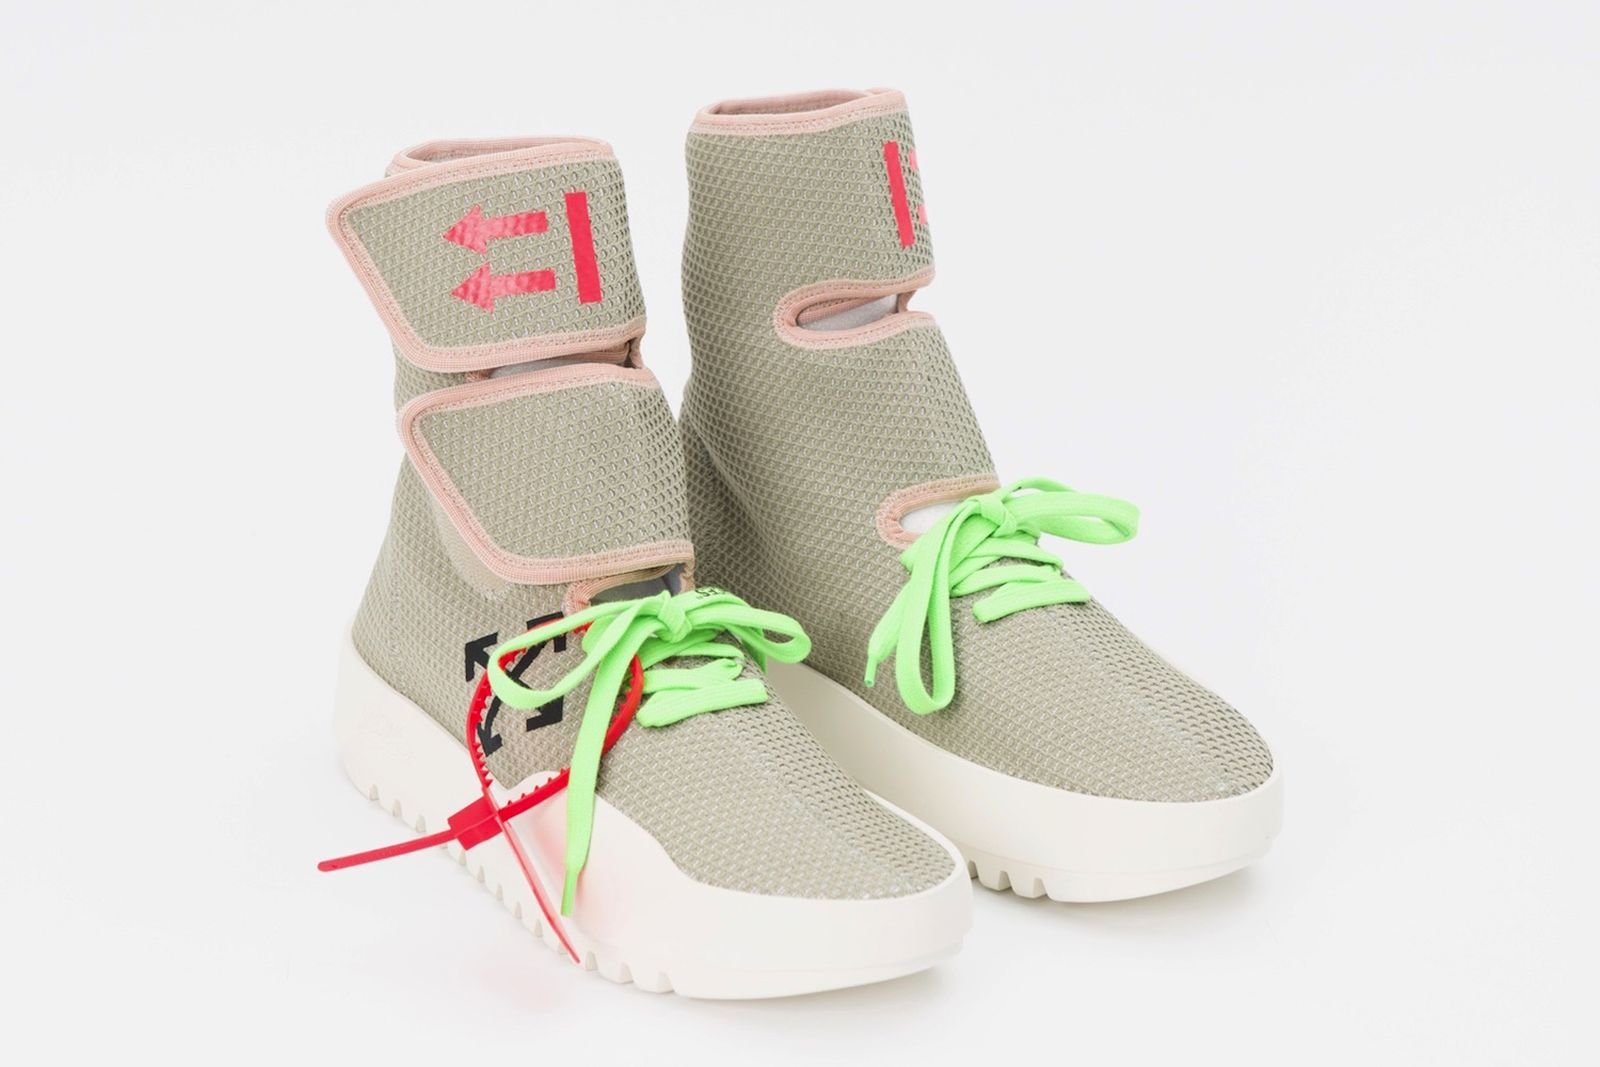 off white cst 100 sneaker release date price info OFF-WHITE c/o Virgil Abloh